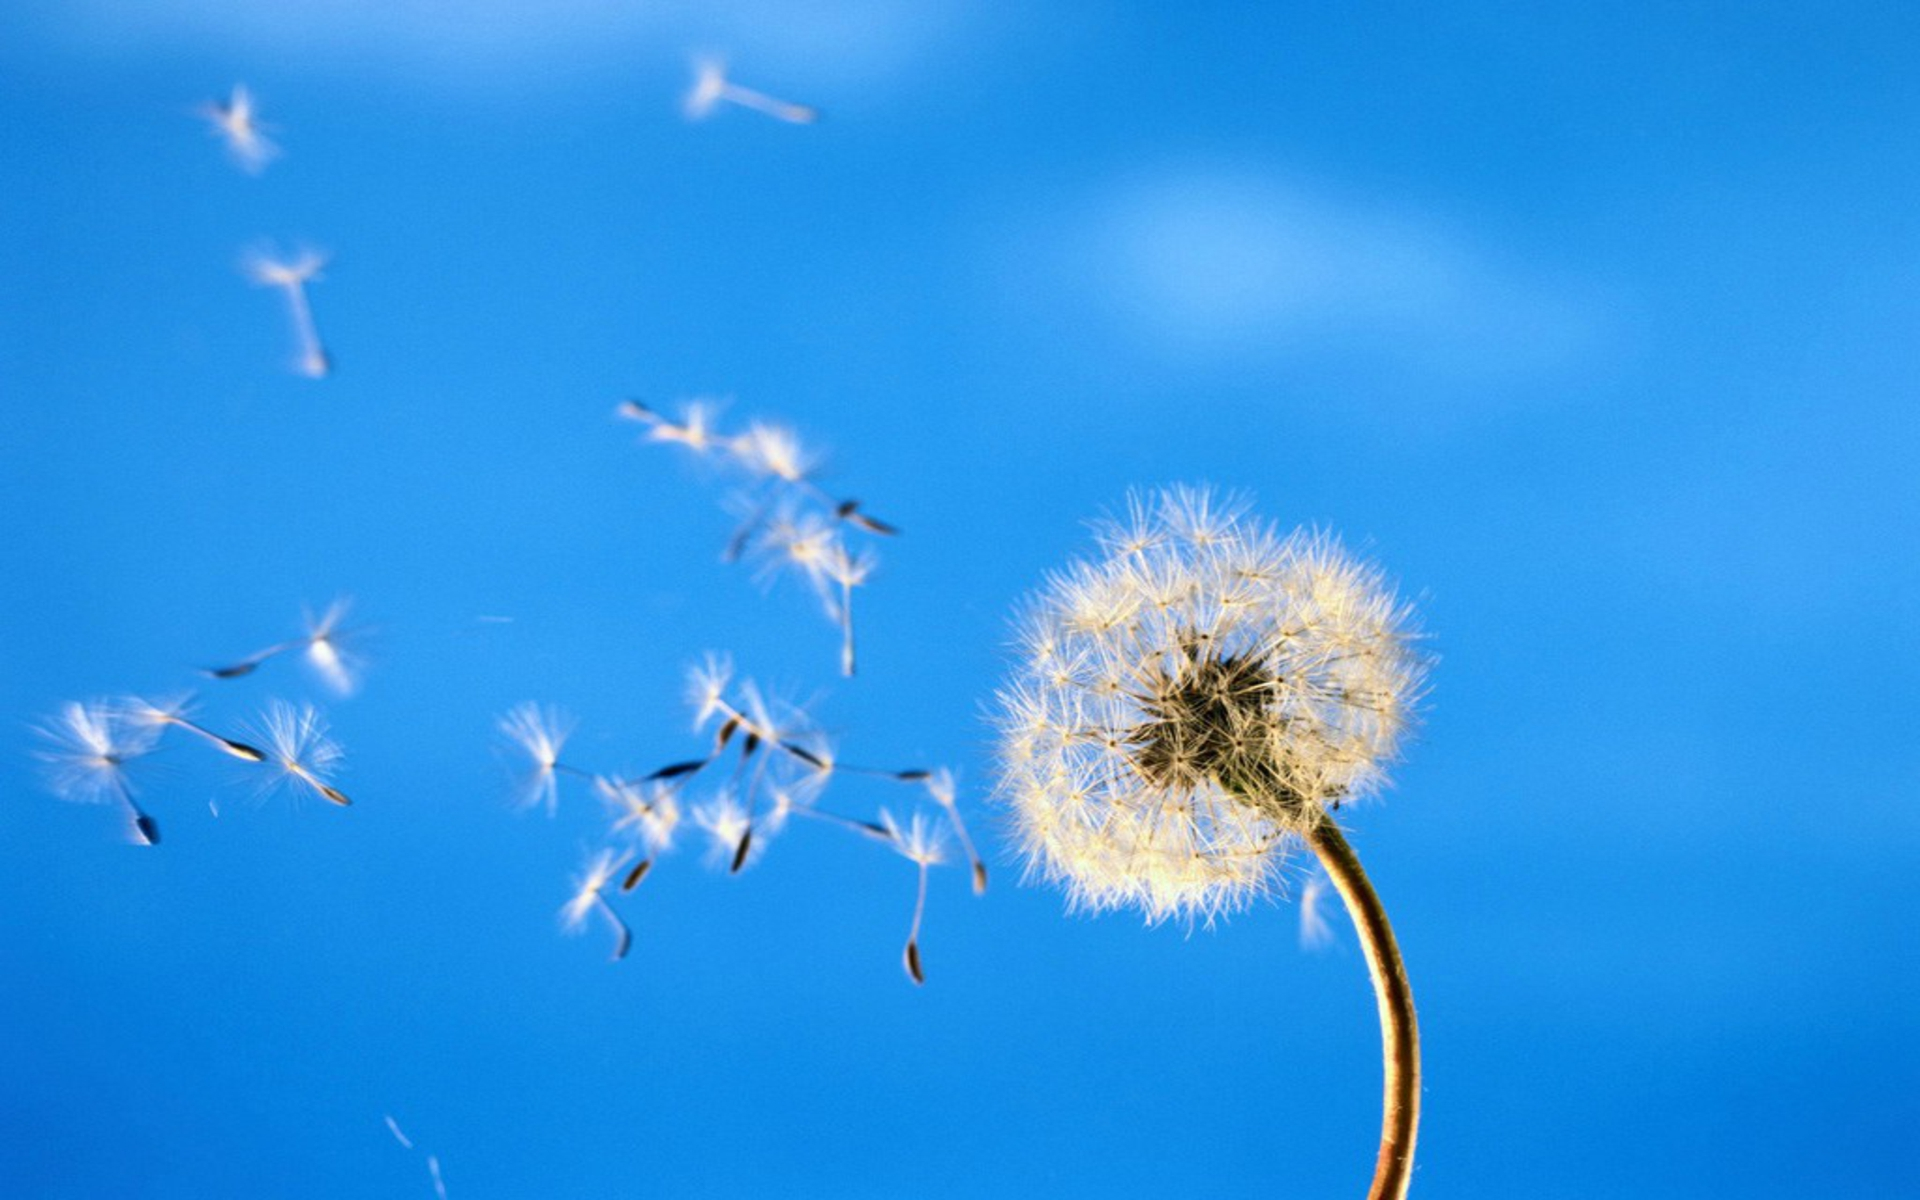 DOWNLOAD: Dandelion in wind.jpg free picture 2560 x 1600